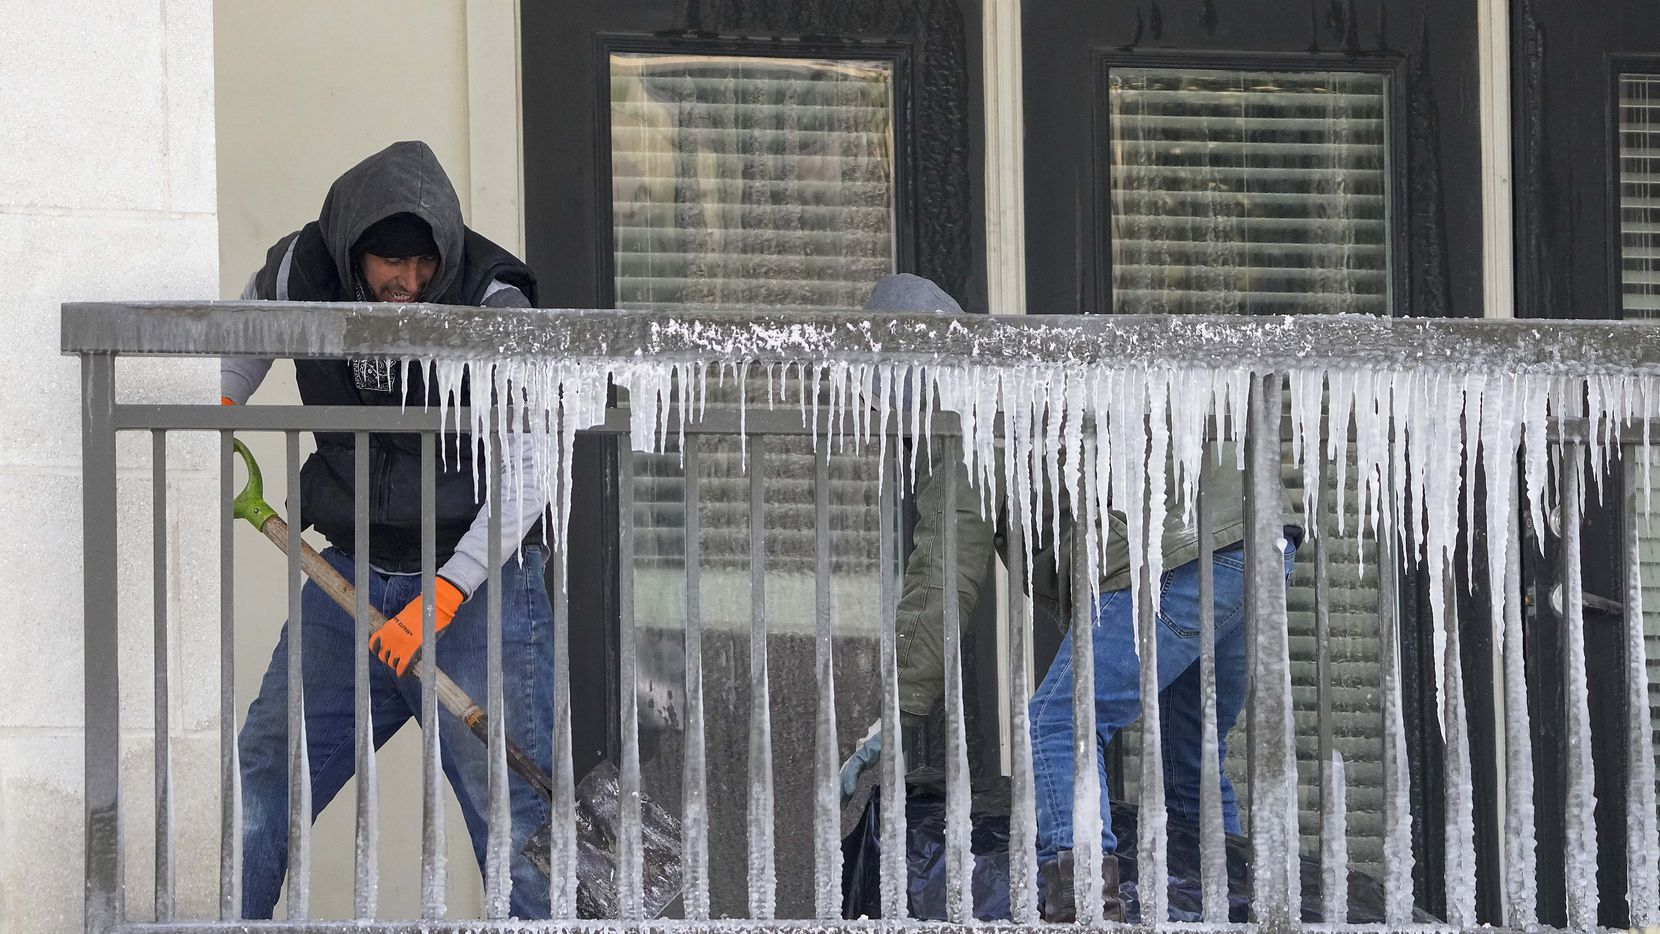 Workers clear debris from a balcony covered in icicles in the Camden Victory Park apartments after a winter storm brought snow and continued freezing temperatures to North Texas. Crews were gutting apartments that were flooded by a broken piped for fire sprinklers.  (Smiley N. Pool/The Dallas Morning News)